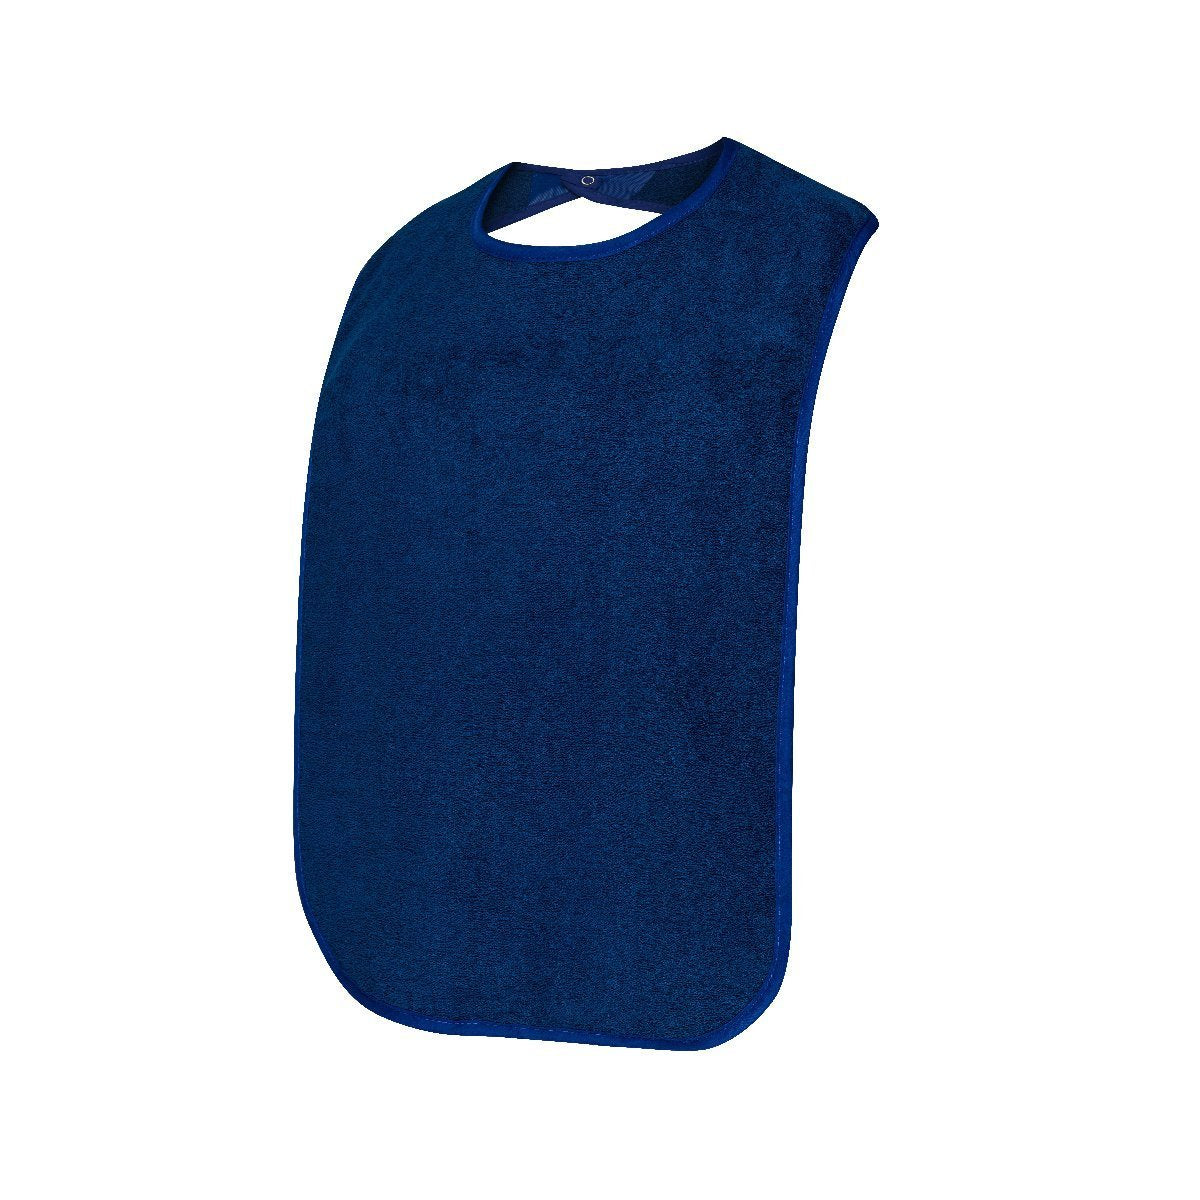 Adult Clothing Protector